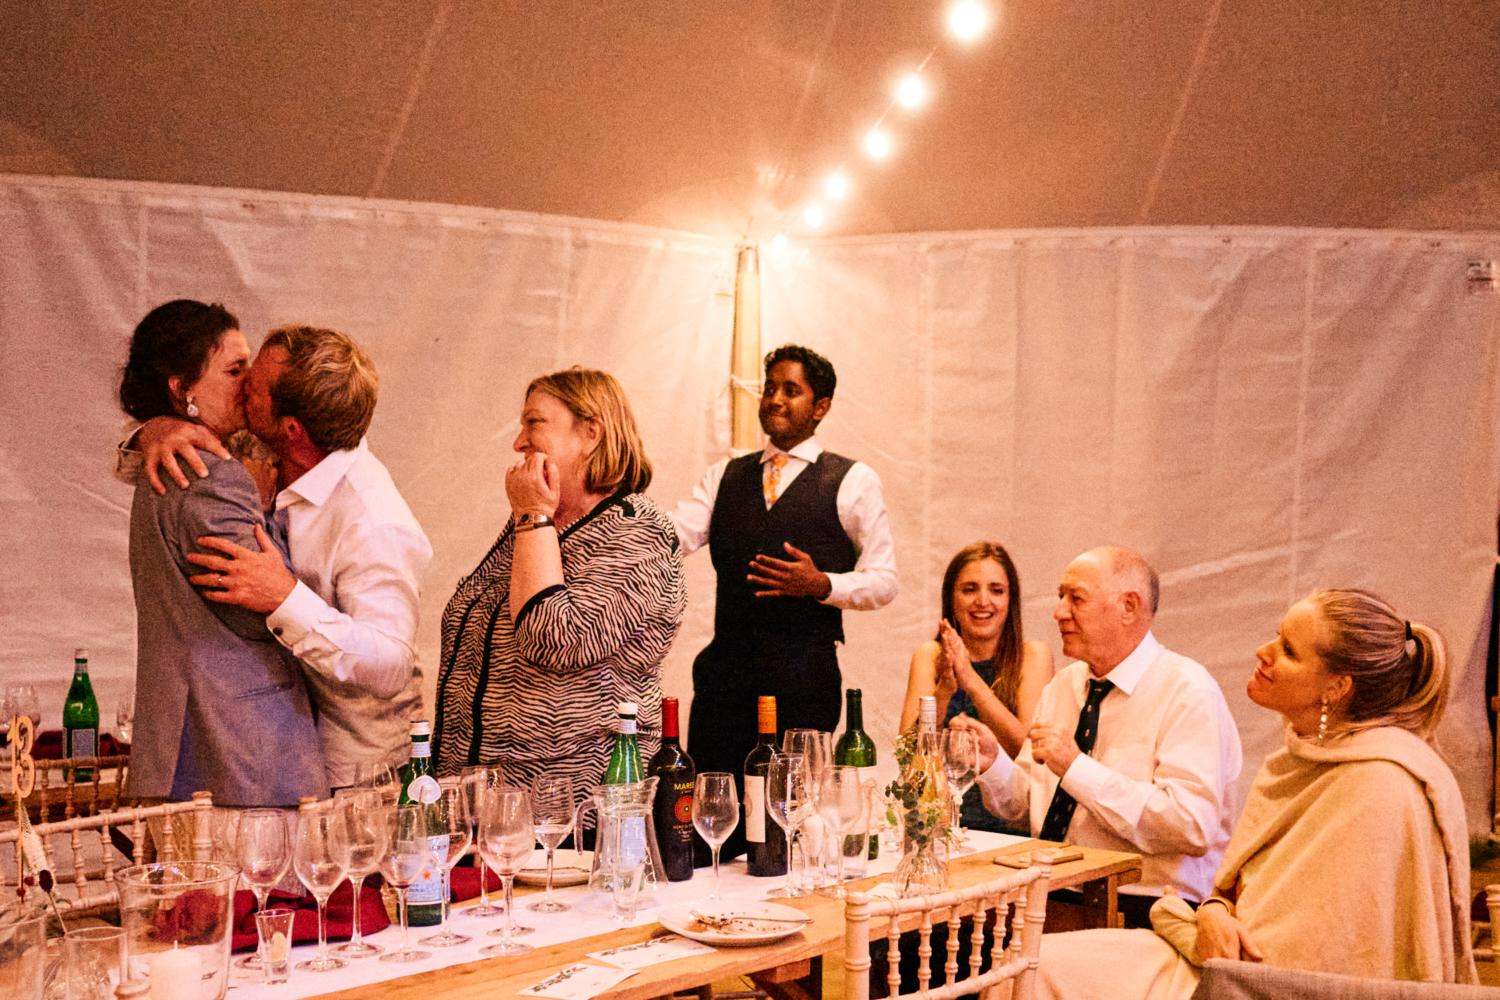 Bride and groom kiss in front of their friends in a marquee